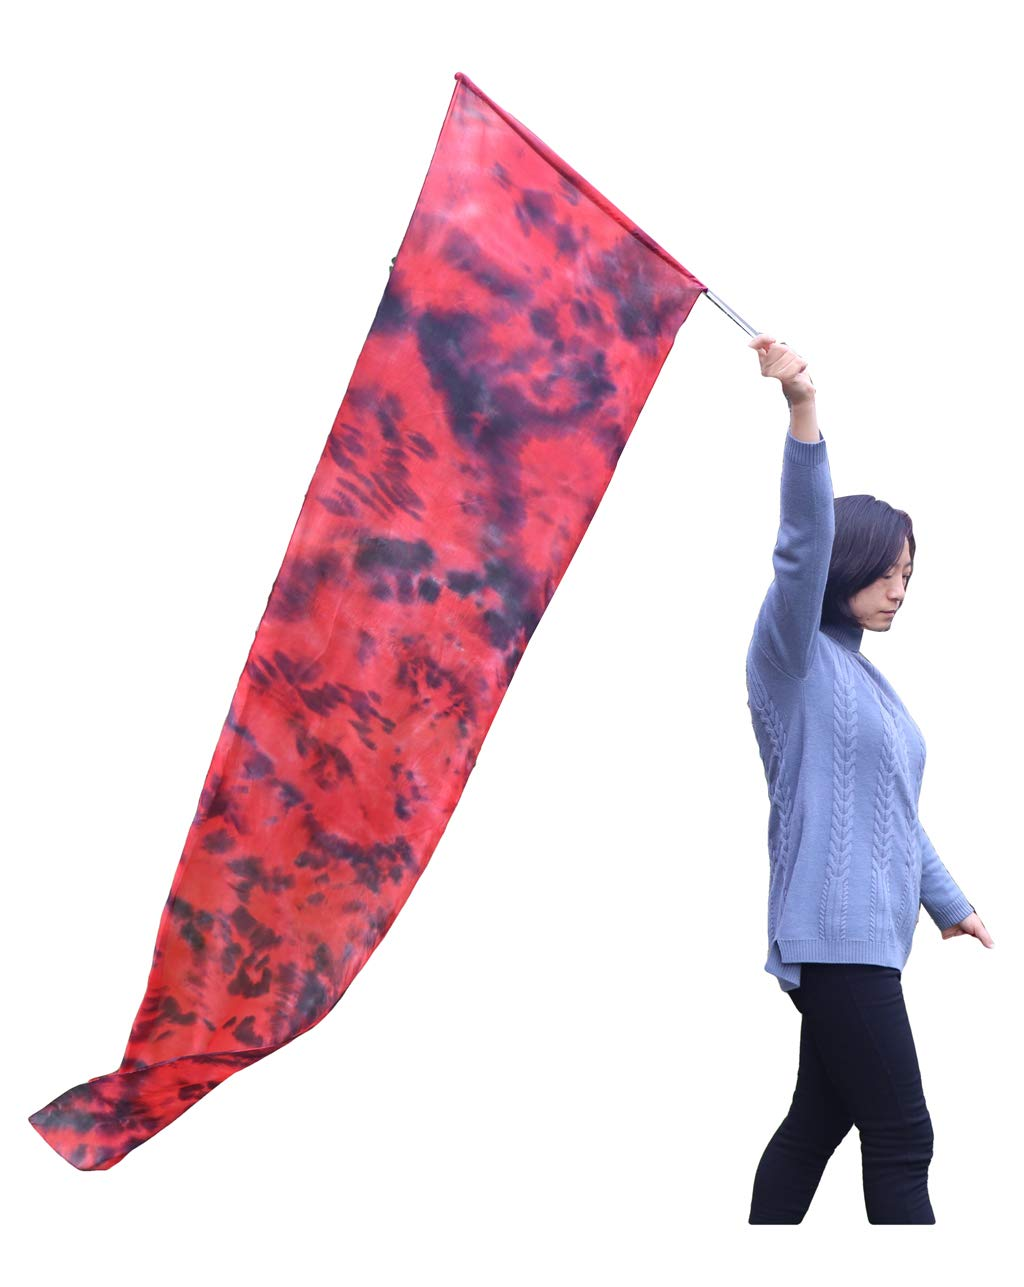 Winged Sirenny 2.5m Hand Painted Colorful Light Weight Flowy Soft Silk Flag with Rod, Church Liturgical Praise & Prophetic Worship Adoration Dance Banner, Pracice Flag Streamer for Christian Dancer Beginners (Lava)